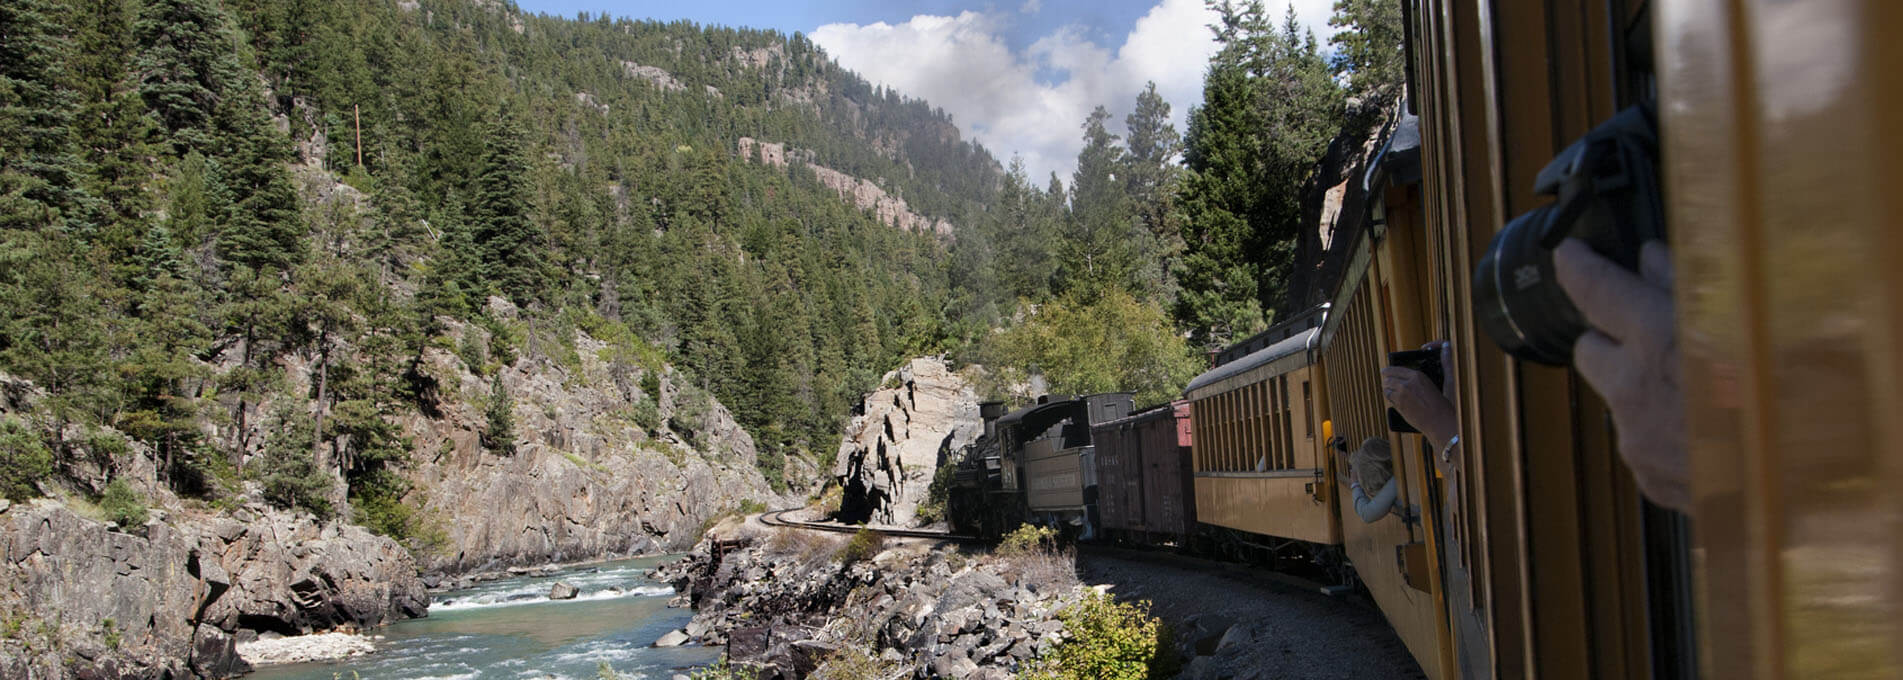 Train Next to River and Mountains